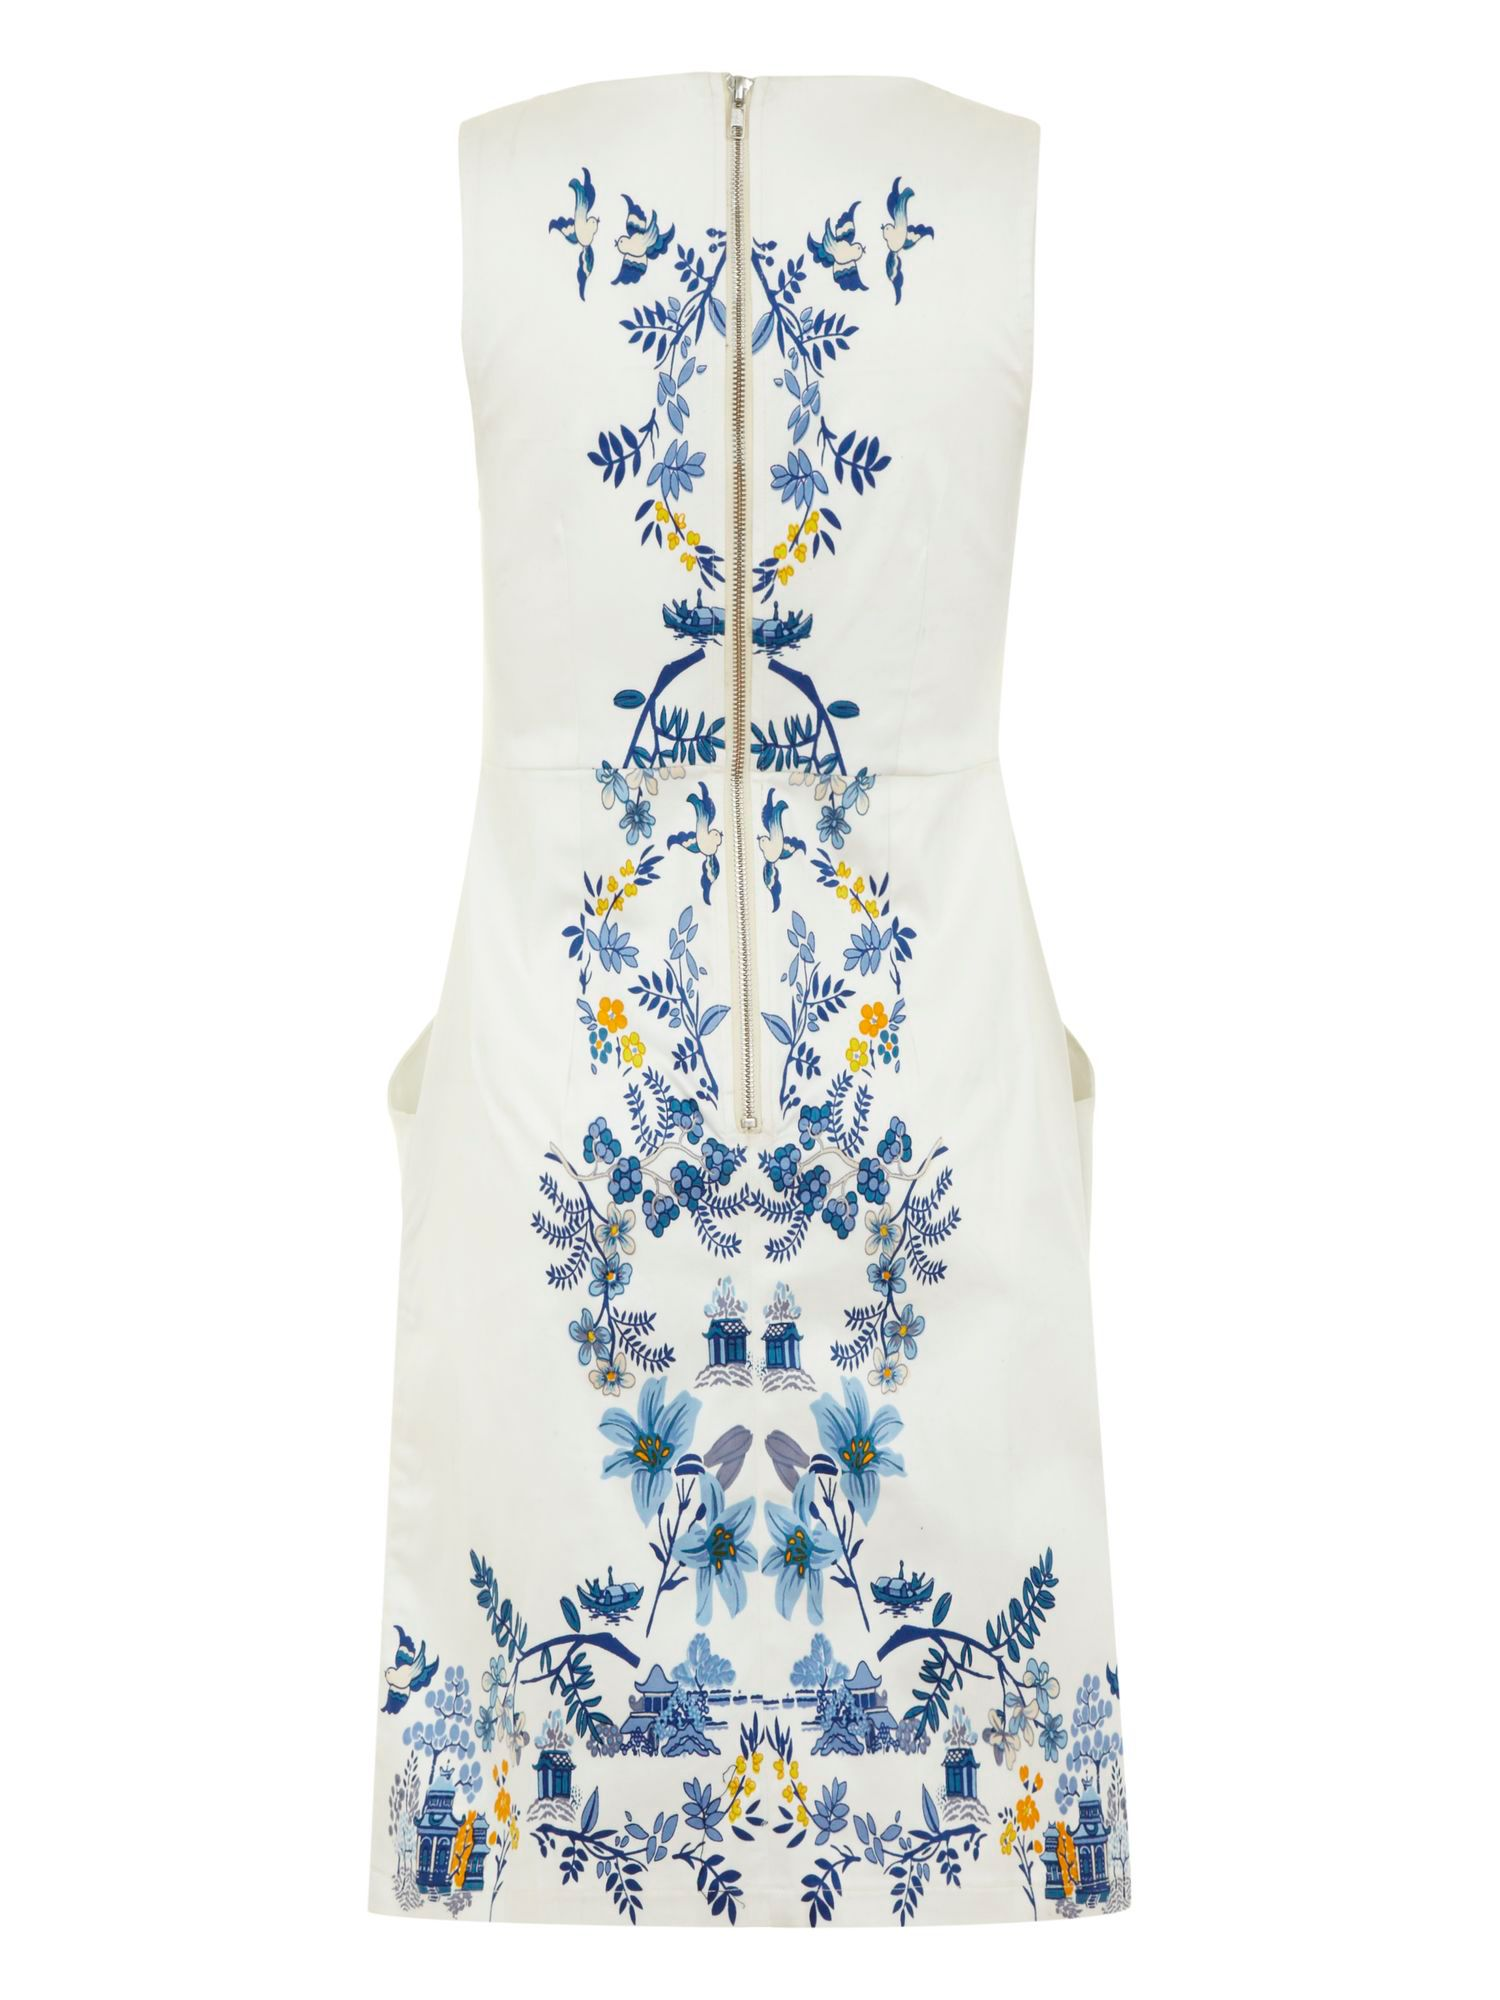 Mirror willow print dress